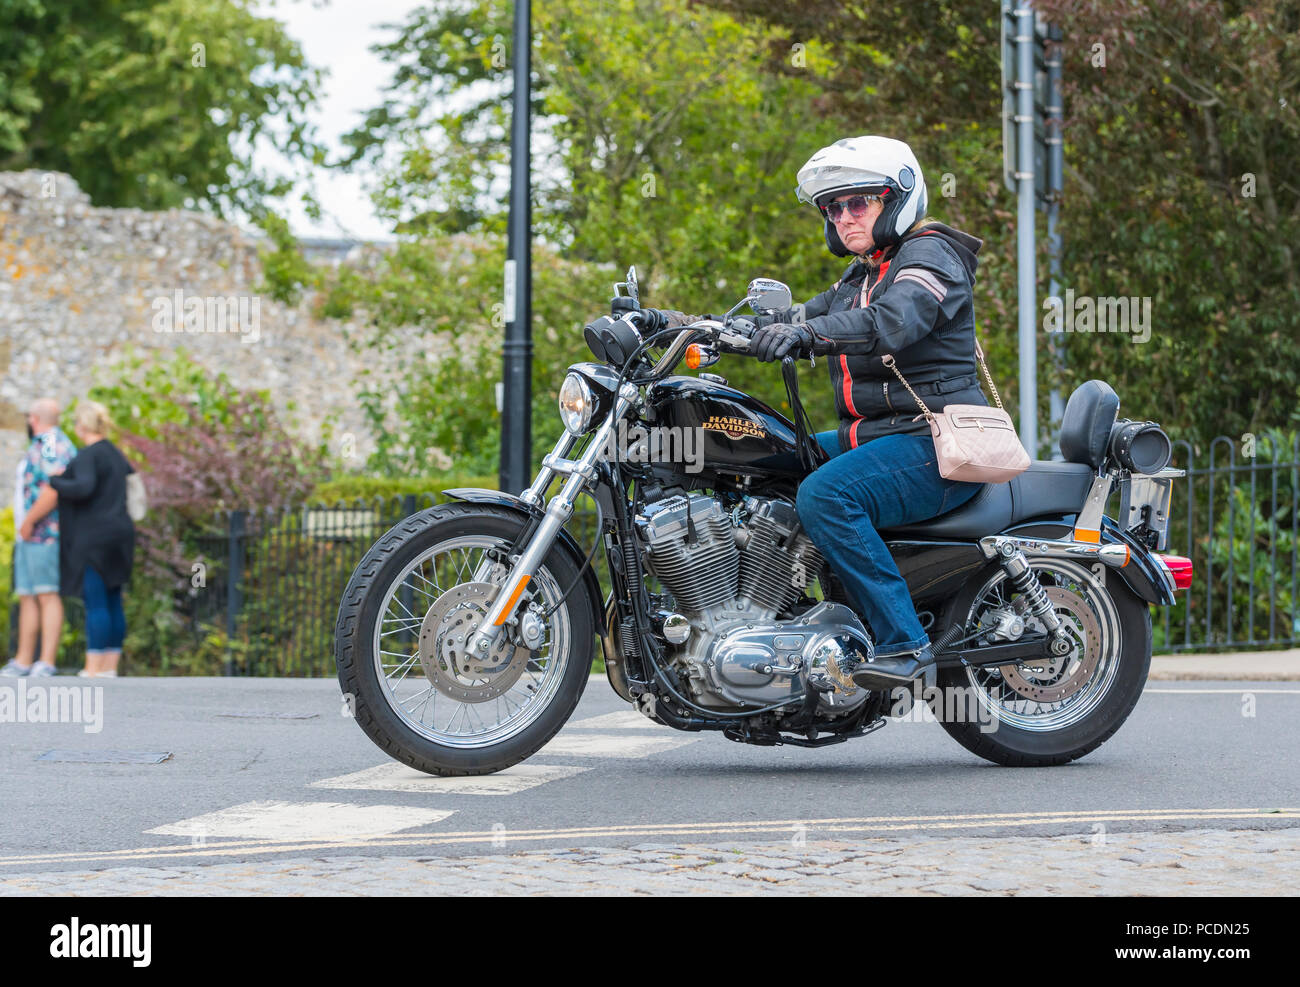 Woman riding a Harley Davidson 883 Sportster motorcycle with handbag over her shoulder in the UK. Female motorcyclist. - Stock Image